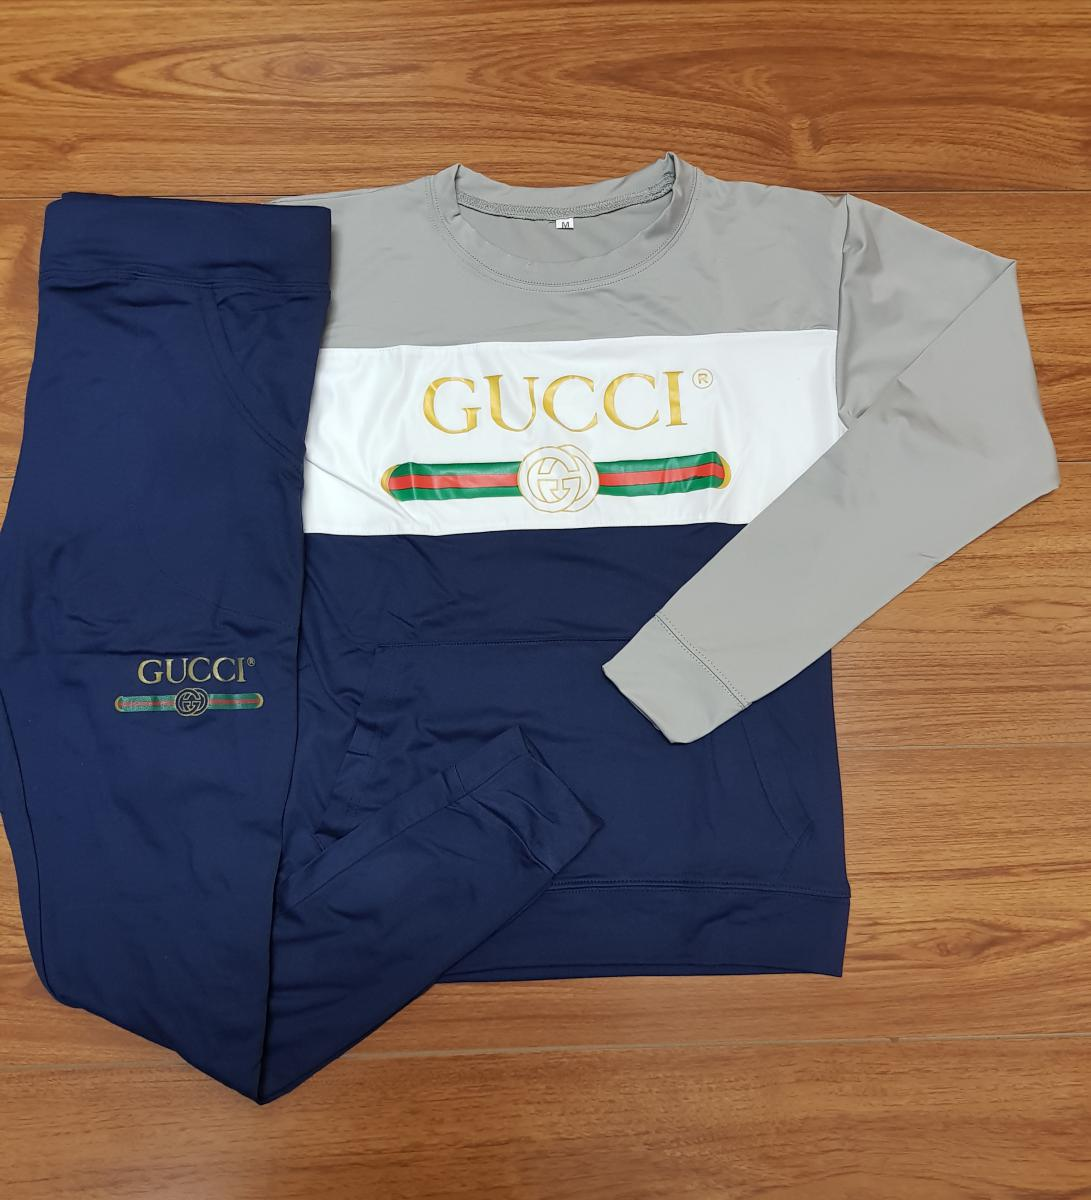 98fbe507 Gucci Women's Tracksuits, Track Pants & T-Shirt Sets - (2197) - TOP ...